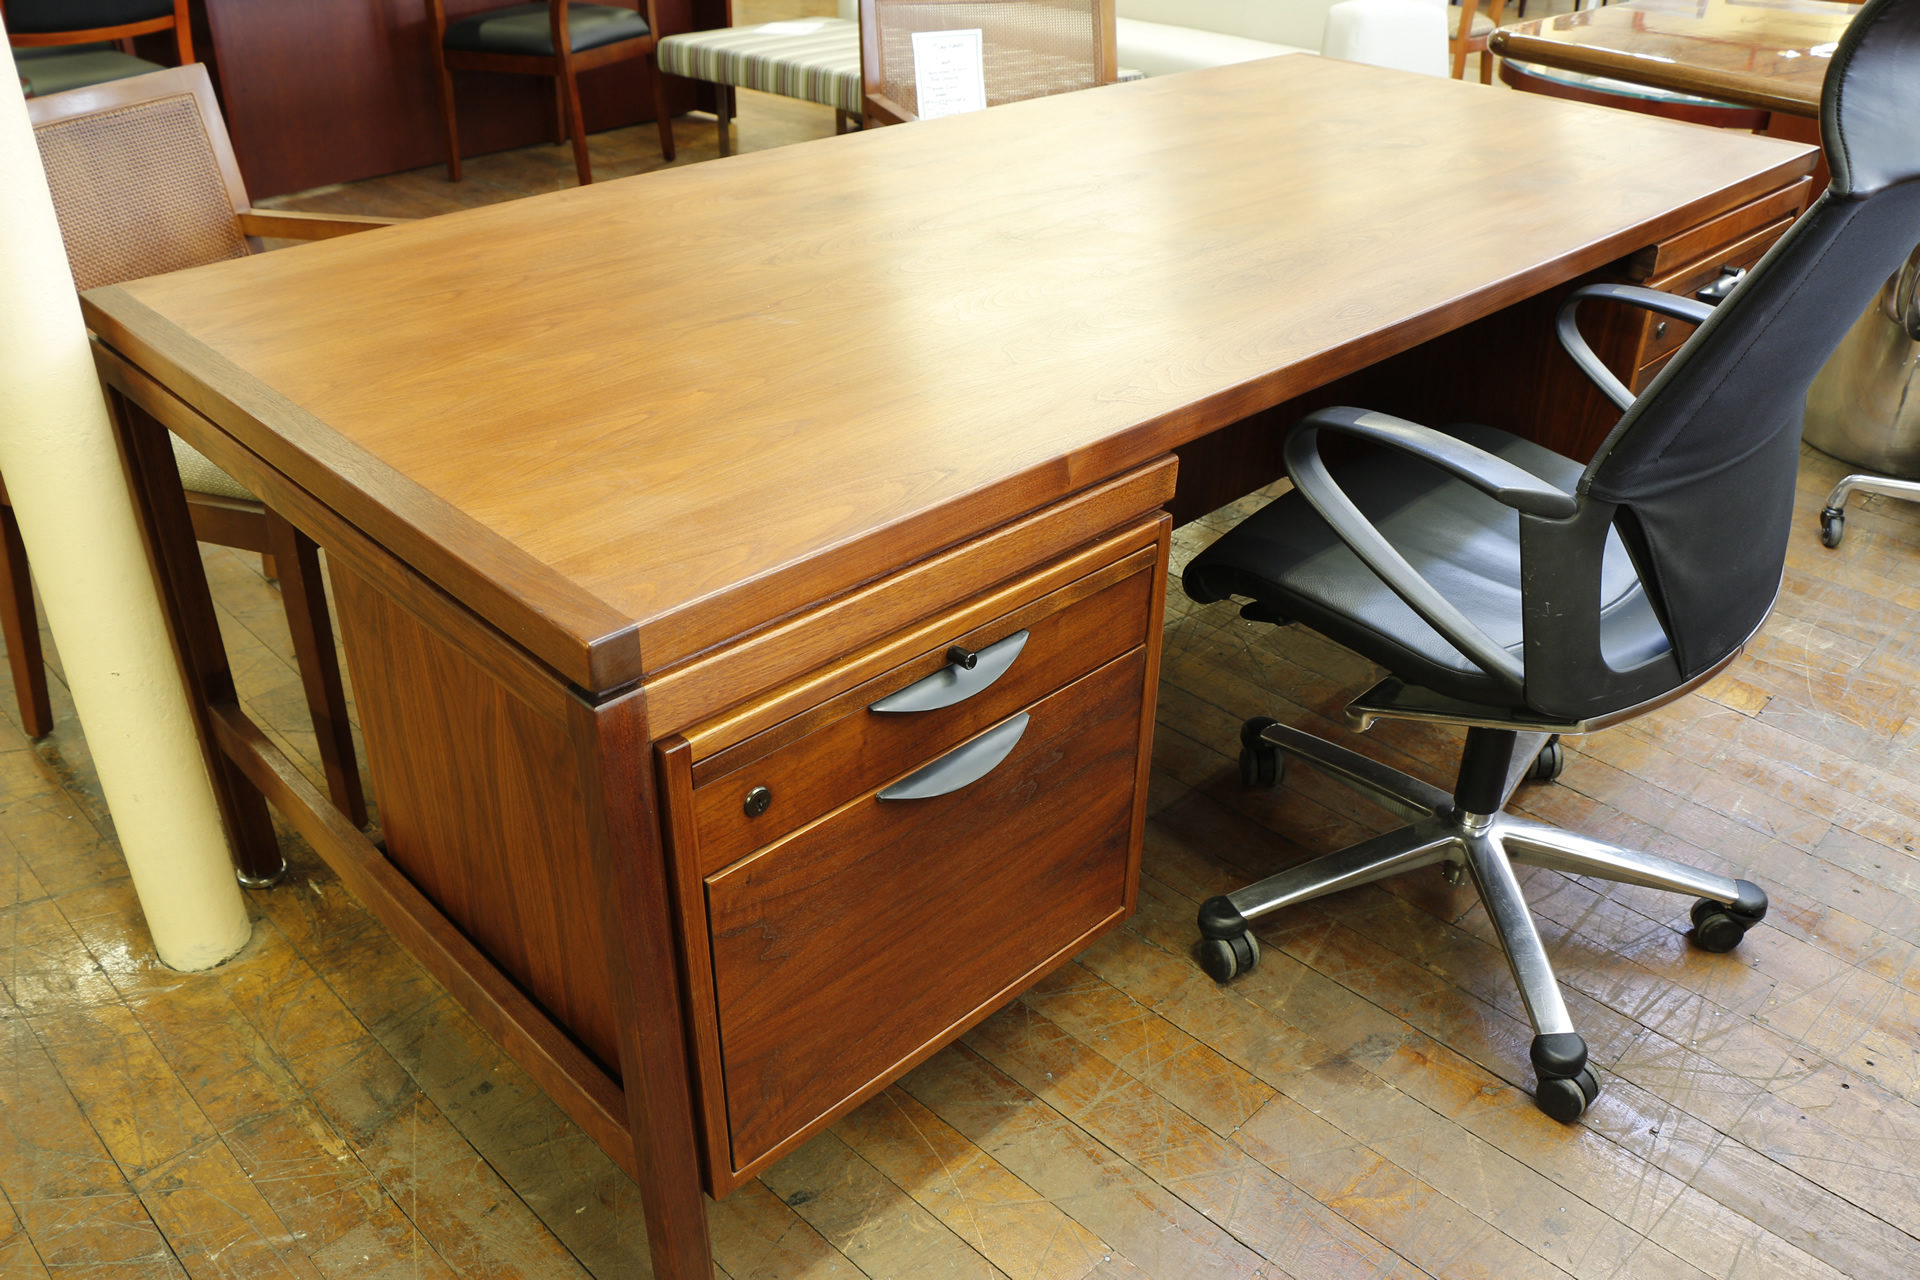 peartreeofficefurniture_peartreeofficefurniture_mg_4382.jpg